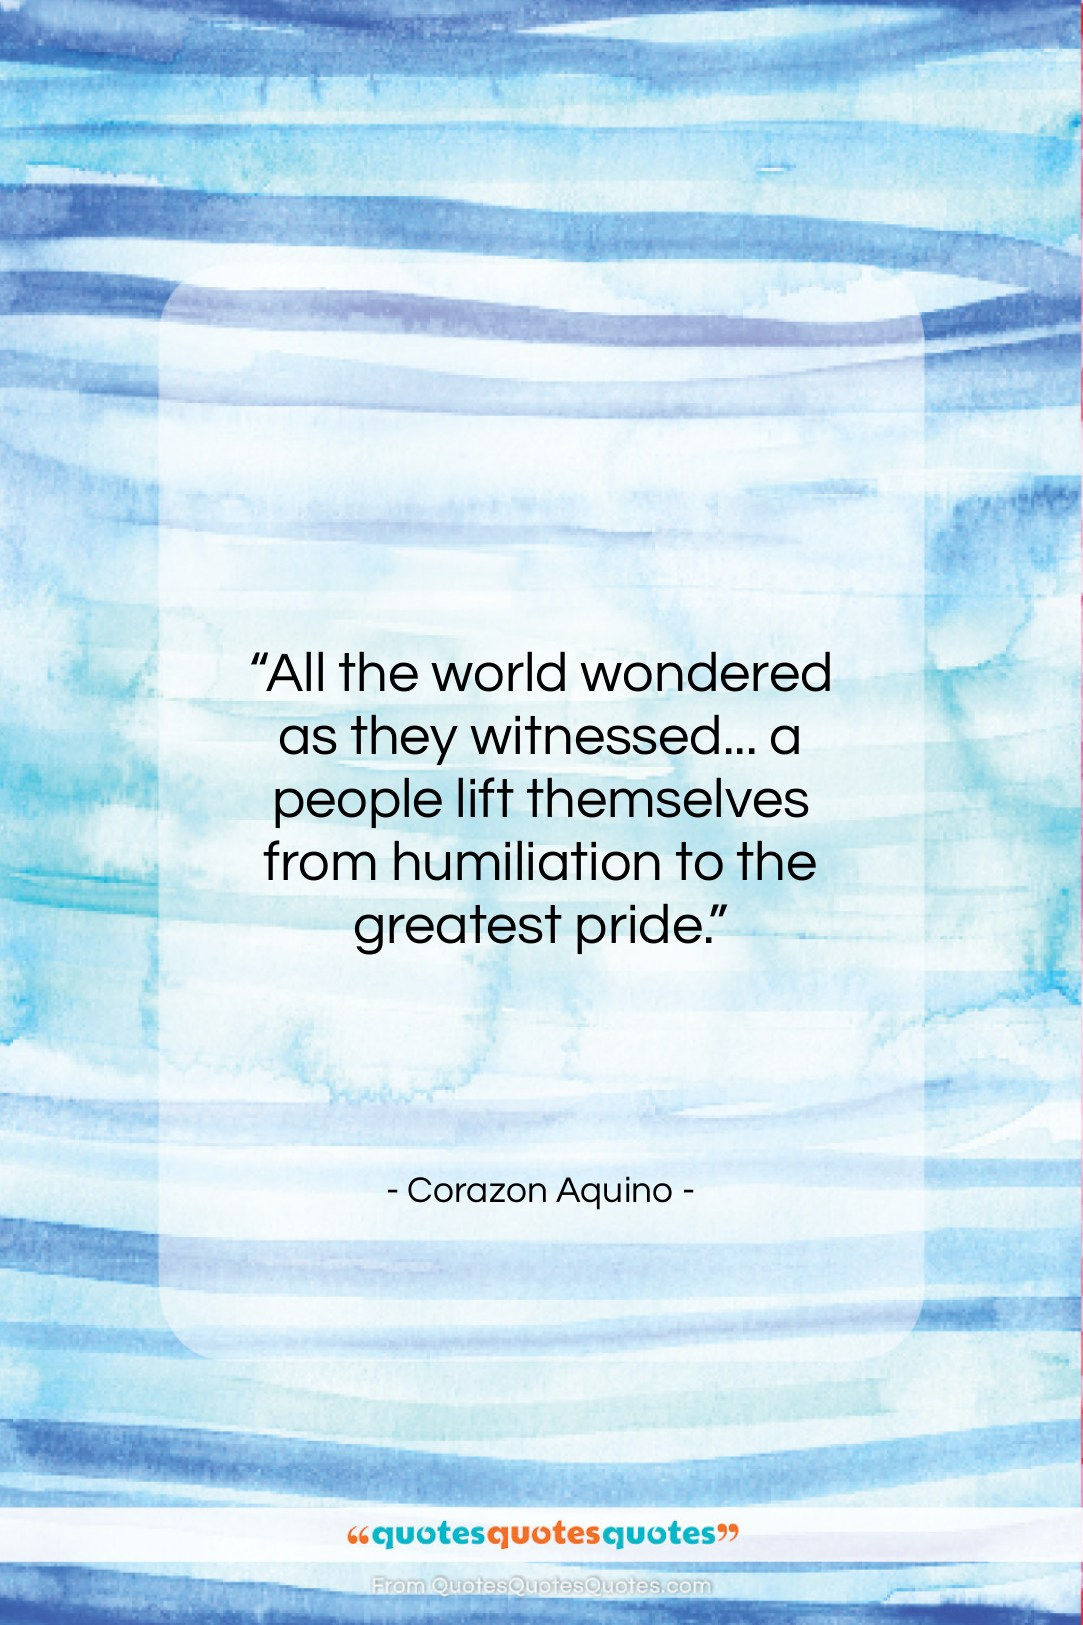 """Corazon Aquino quote: """"All the world wondered as they witnessed……""""- at QuotesQuotesQuotes.com"""